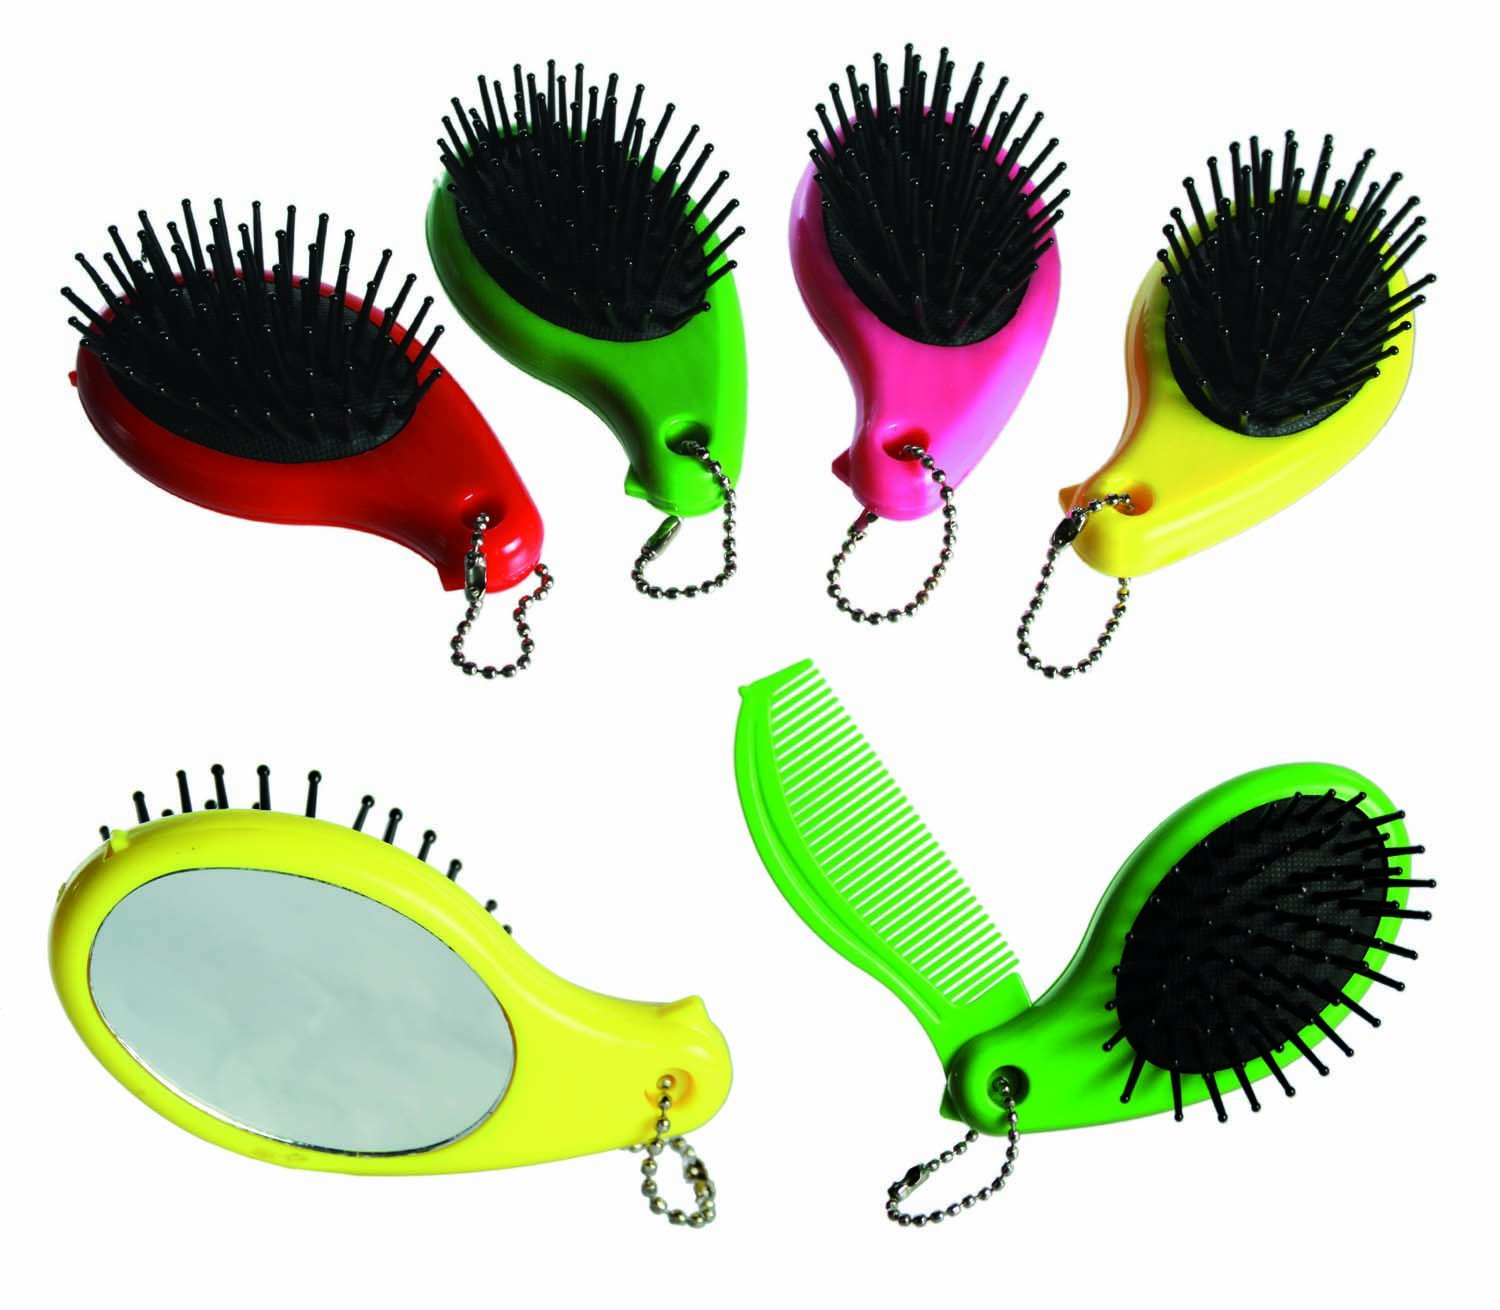 Small & Compact - Pink Compact Hairbrush with Integrated Comb & Mirror - Girl Girls Child Children Kids Great Idea for Christmas Stocking Filler Xmas Present Gift Fun Games & Toys Idea Age 3+ - One Supplied Kenzies Gifts